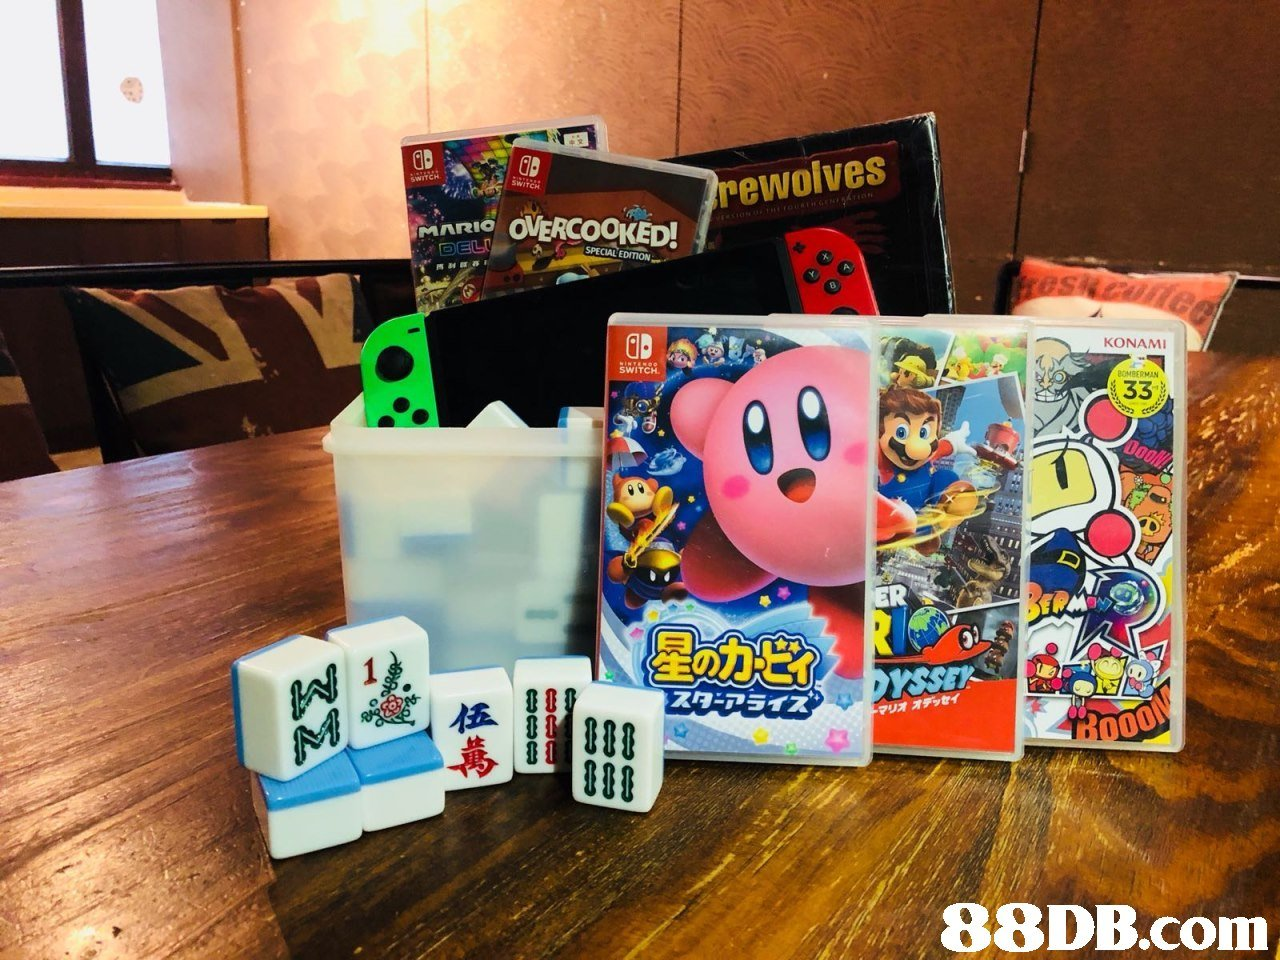 rewoives SPECIAL EDITION KONAMI SWITCH 星のかど。 ス アライズ: マリオオデッセイ,product,technology,games,product,electronic device